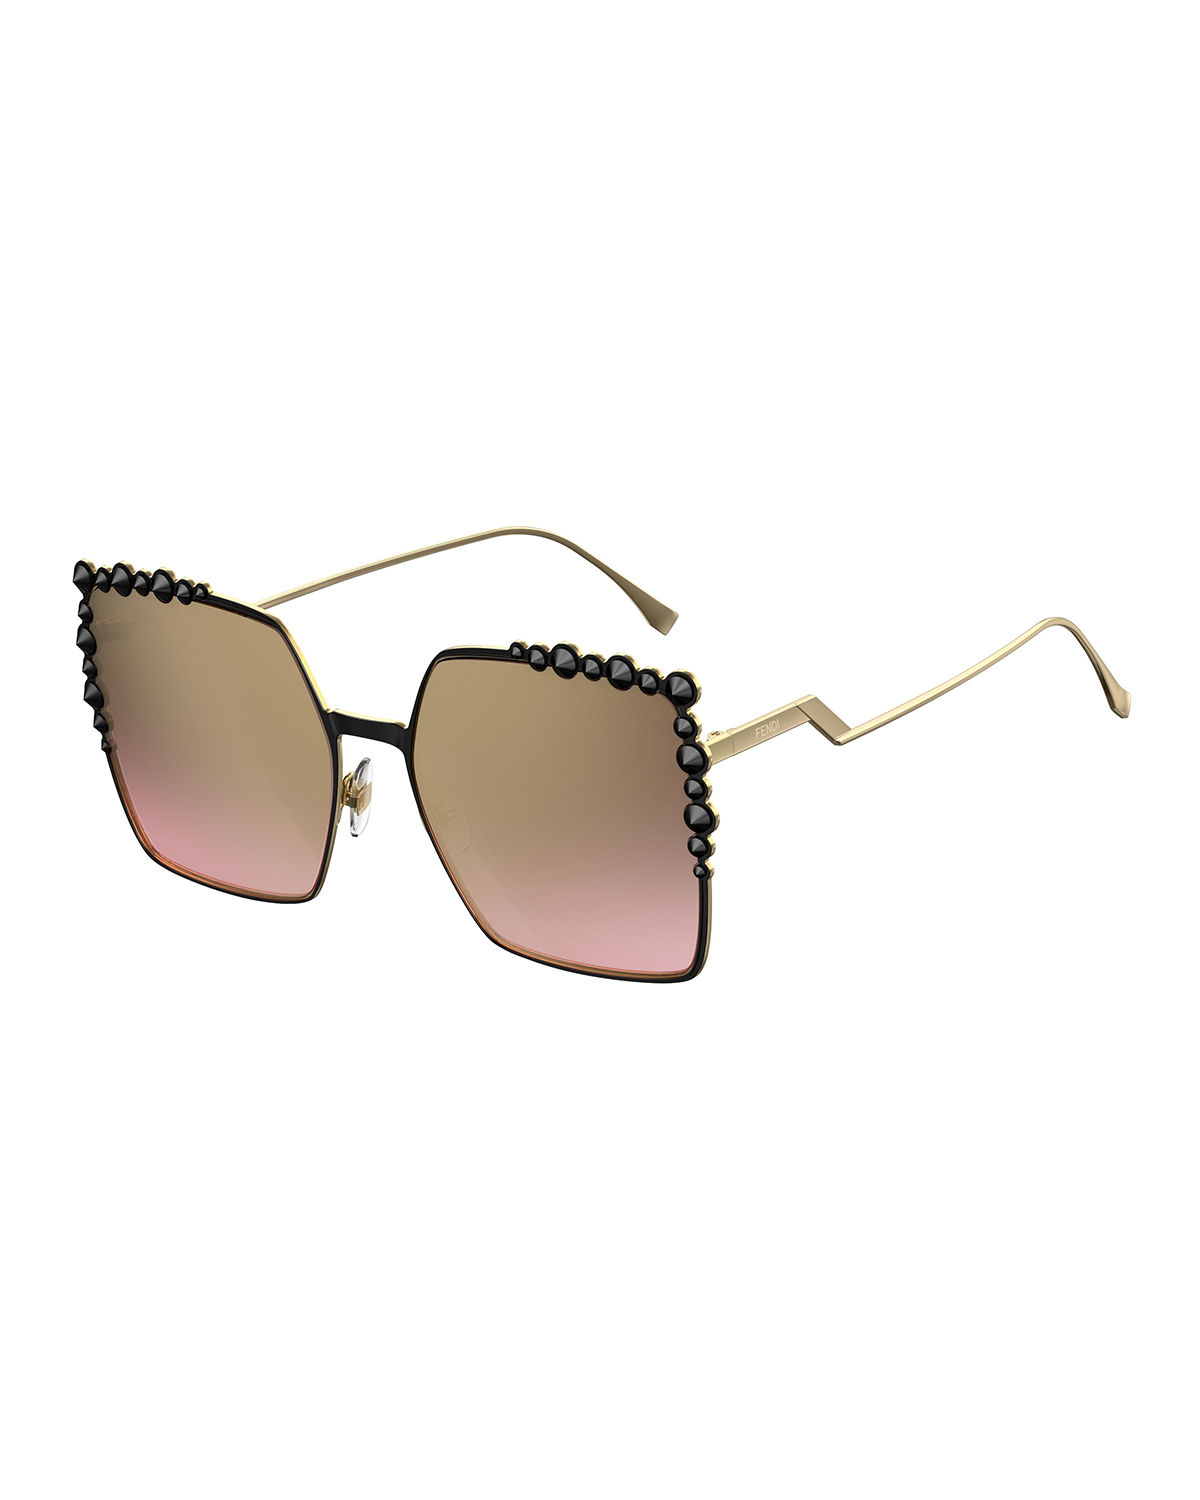 2c3b2e69ea Fendi Can Eye Studded Oversized Square Sunglasses